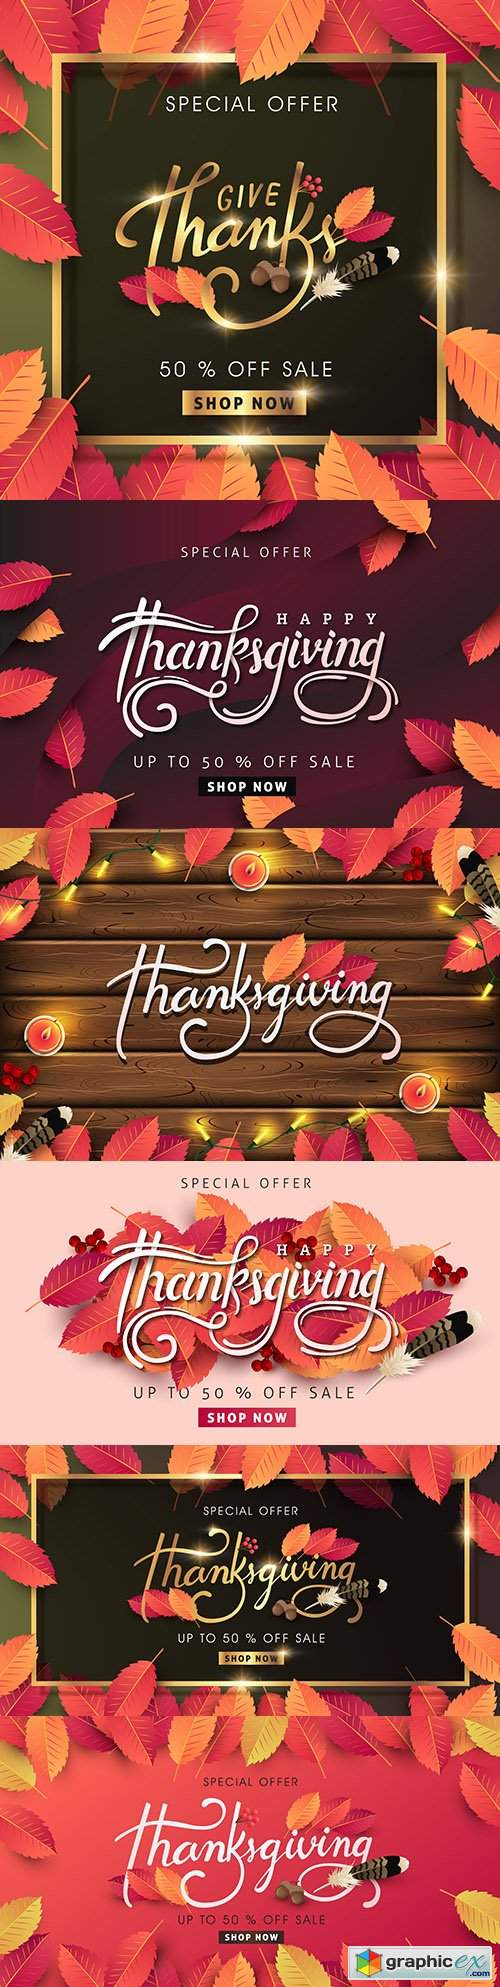 Thanksgiving autumn background calligraphic design inscriptions